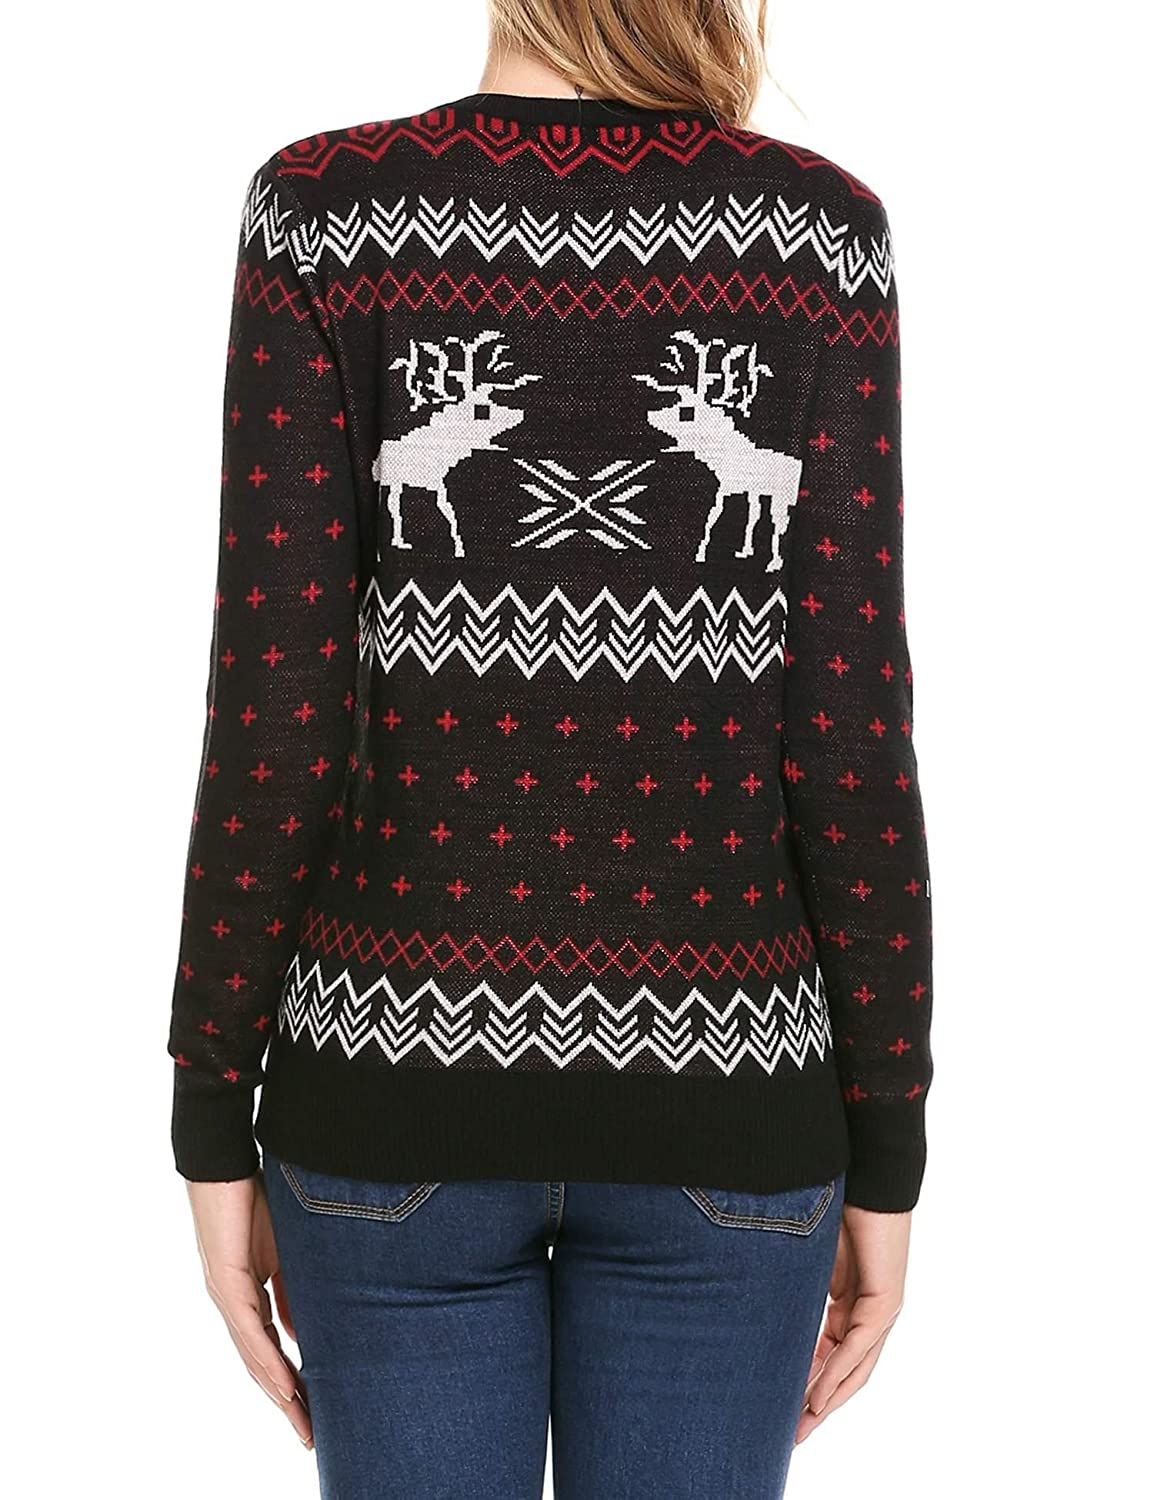 24d1a09bf61b SoTeer Womens Christmas Sweater Reindeer Snowflakes Long Sleeve Round Neck  Cute Knit Pullover Sweaters at Amazon Women's Clothing store: